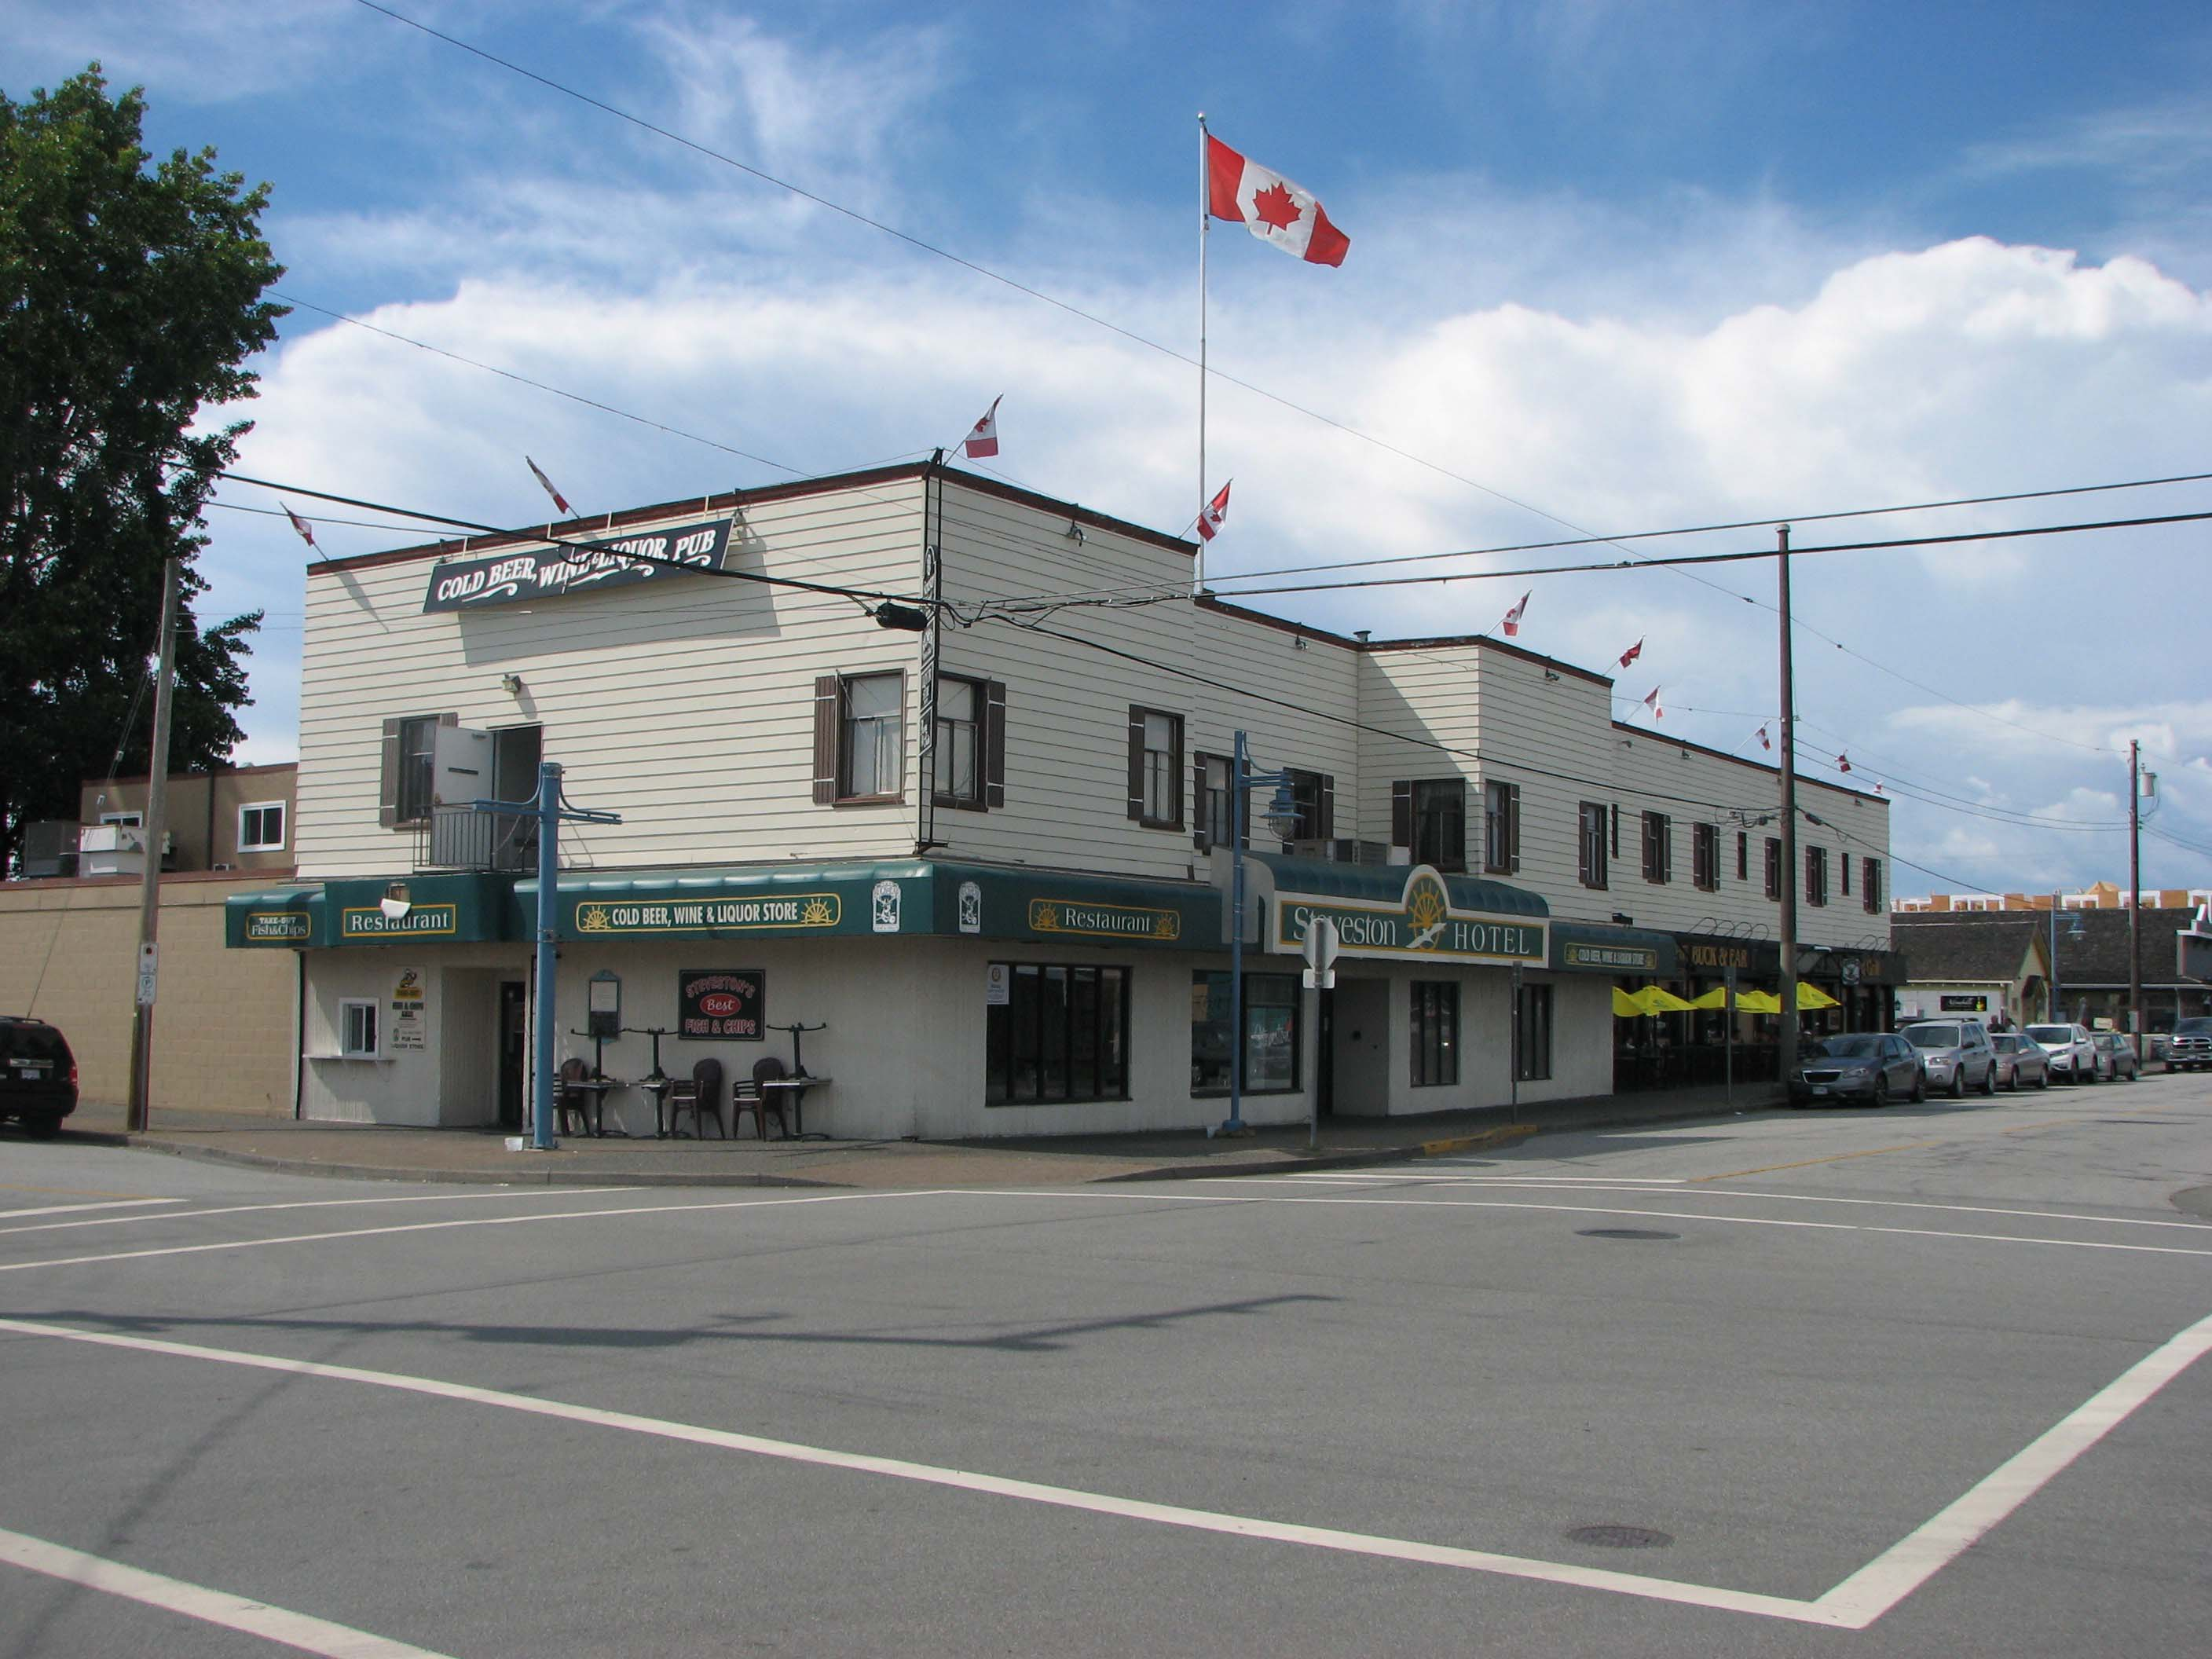 Steveston Hotel - Home of The Buck & Ear Pub, Steveson Harbour